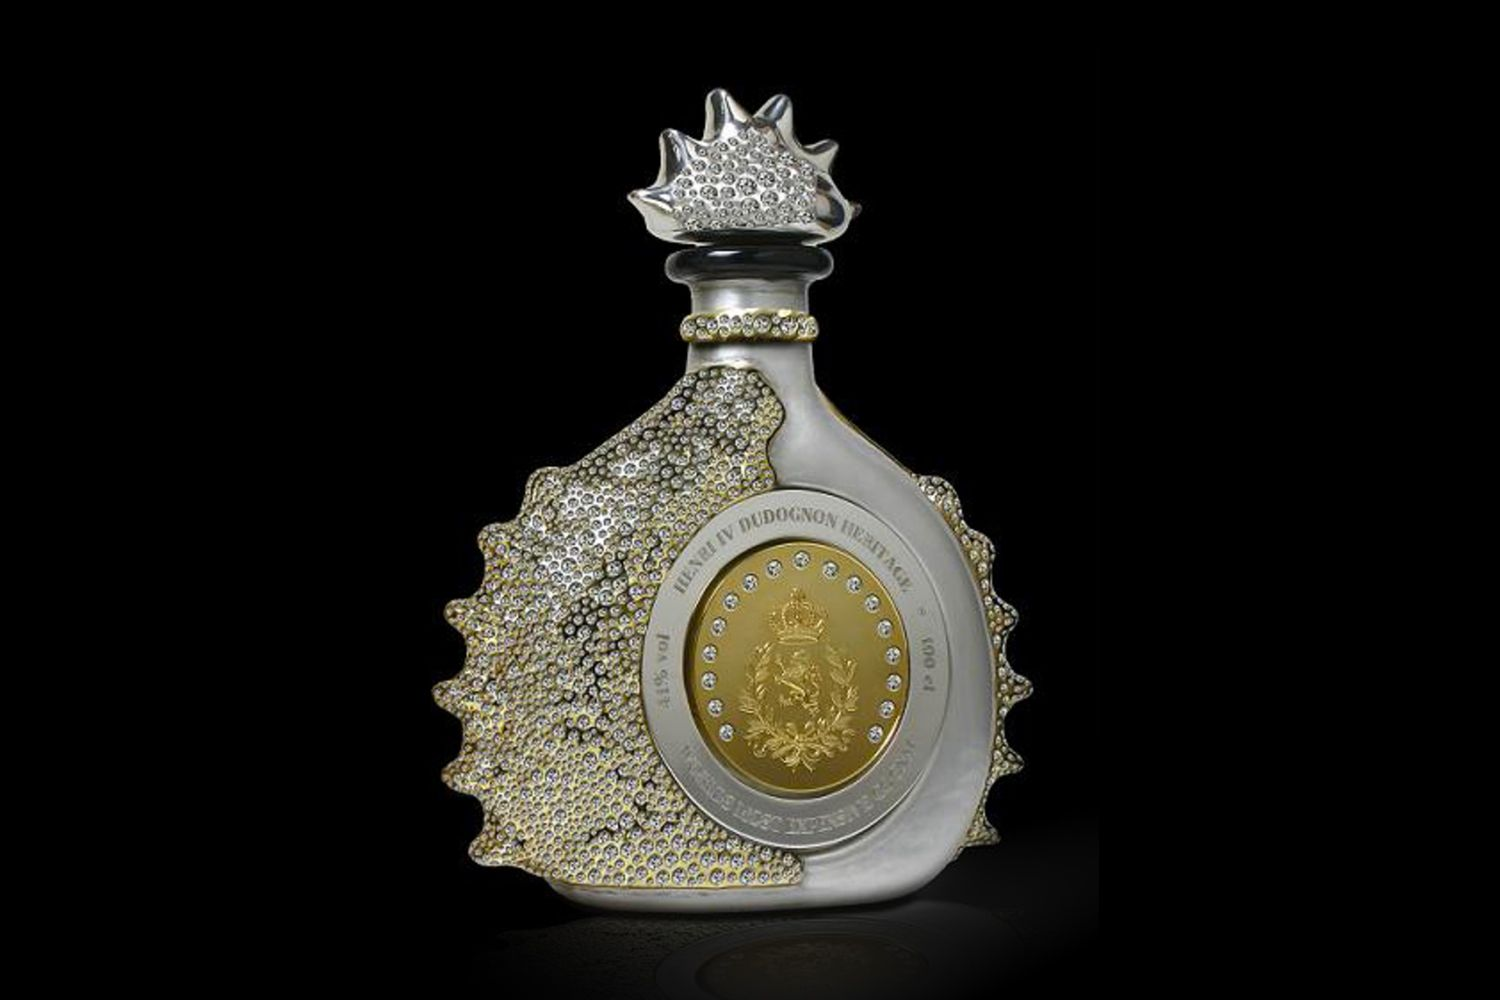 the-10-most-expensive-alcoholic-drinks-in-the-world-henriiv-dudognon-heritage-cognac-grande-champagne The 10 Most Expensive Alcoholic Drinks On Earth The 10 Most Expensive Alcoholic Drinks On Earth Henry IV Cognac